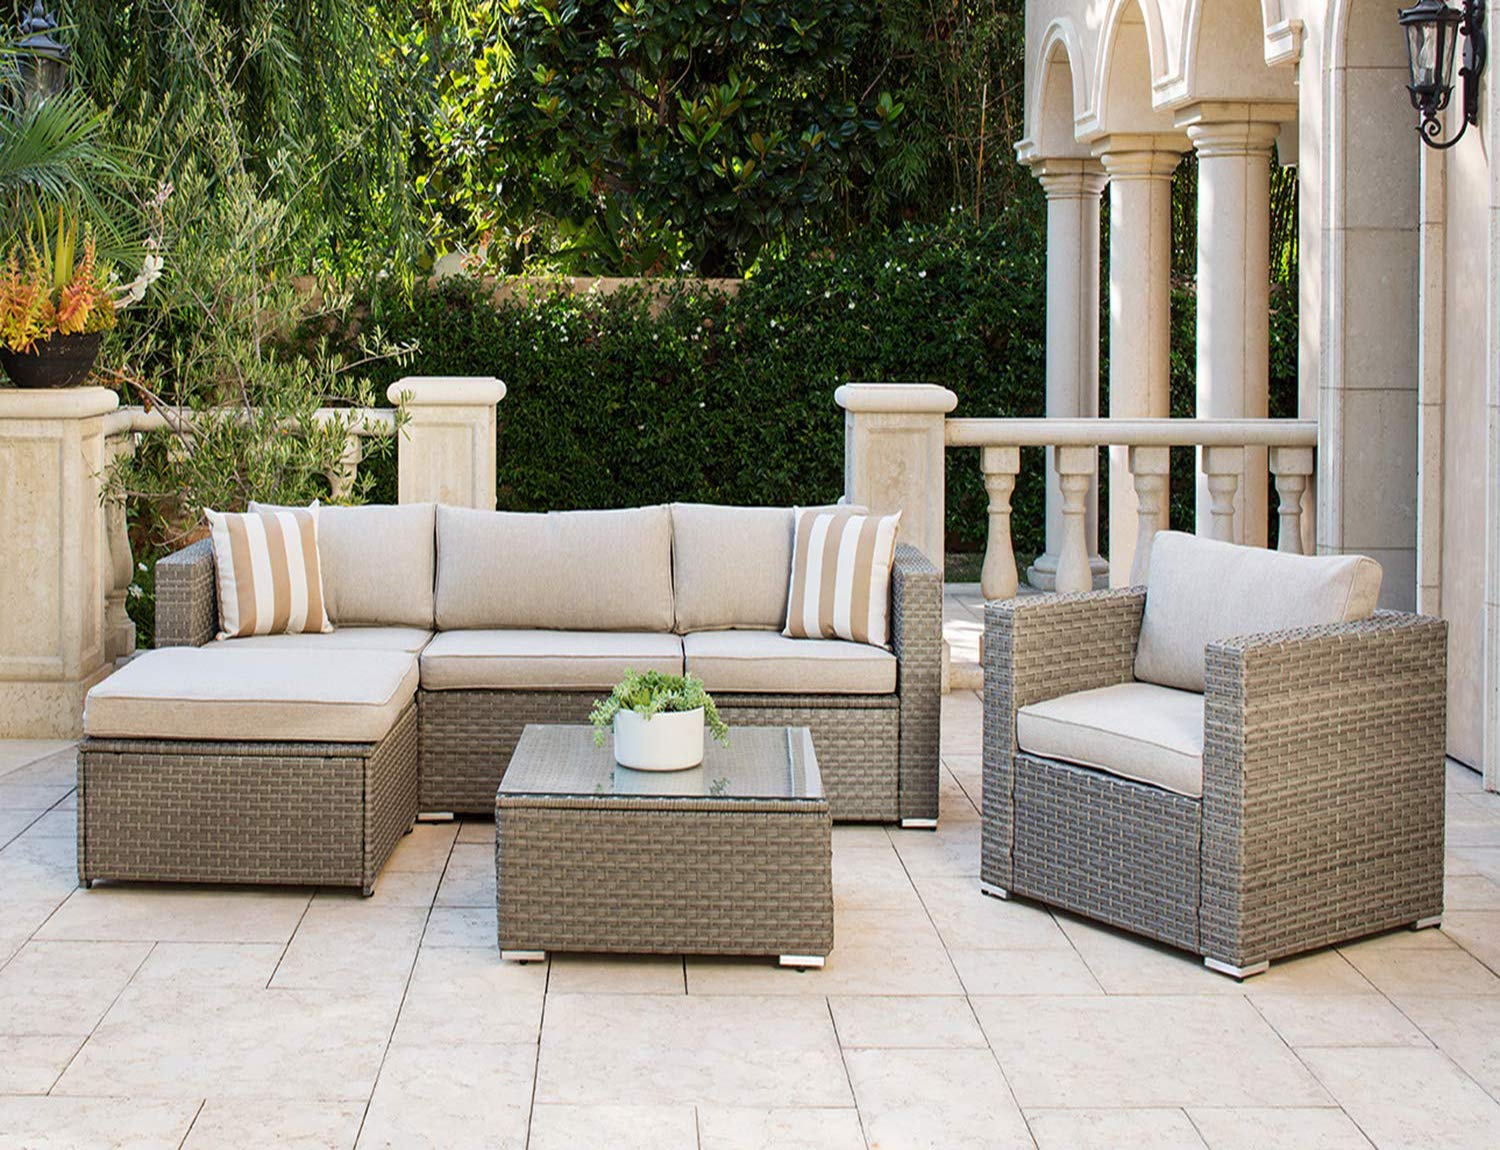 Amazon Com Solaura Outdoor Furniture Set 6 Piece Wicker Furniture